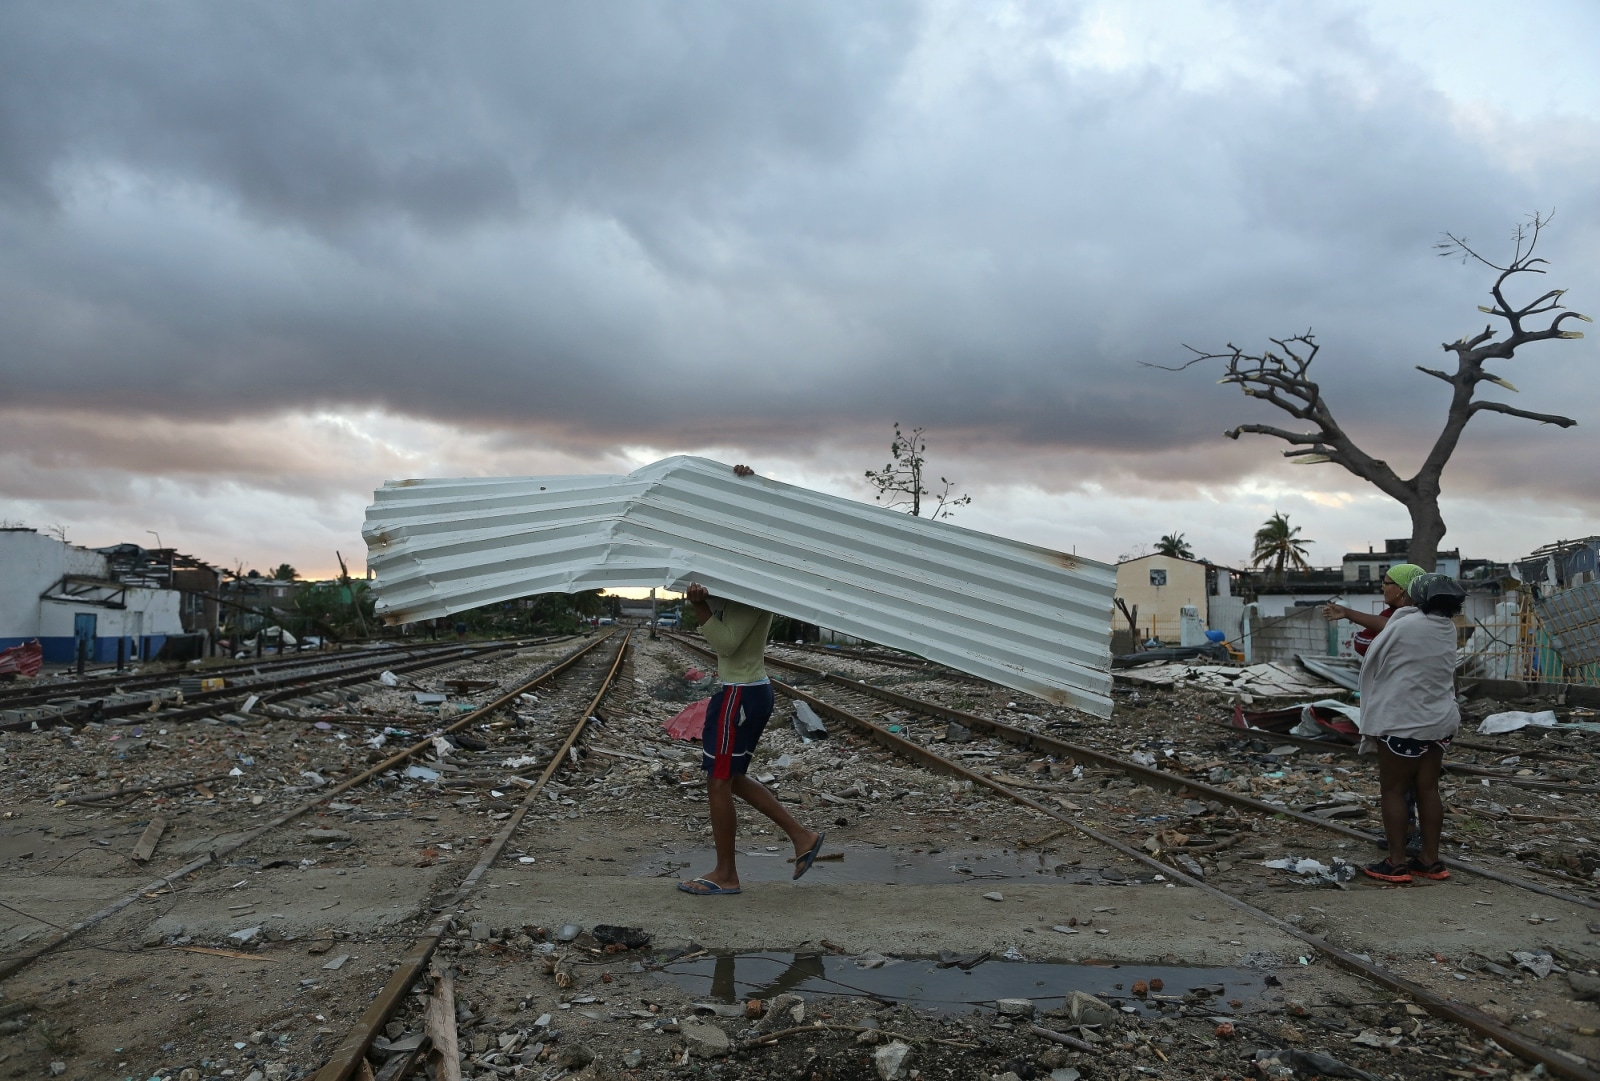 A man carries a sheet of aluminium after a tornado ripped through a neighbourhood in Havana, Cuba January 28, 2019. REUTERS/Fernando Medina